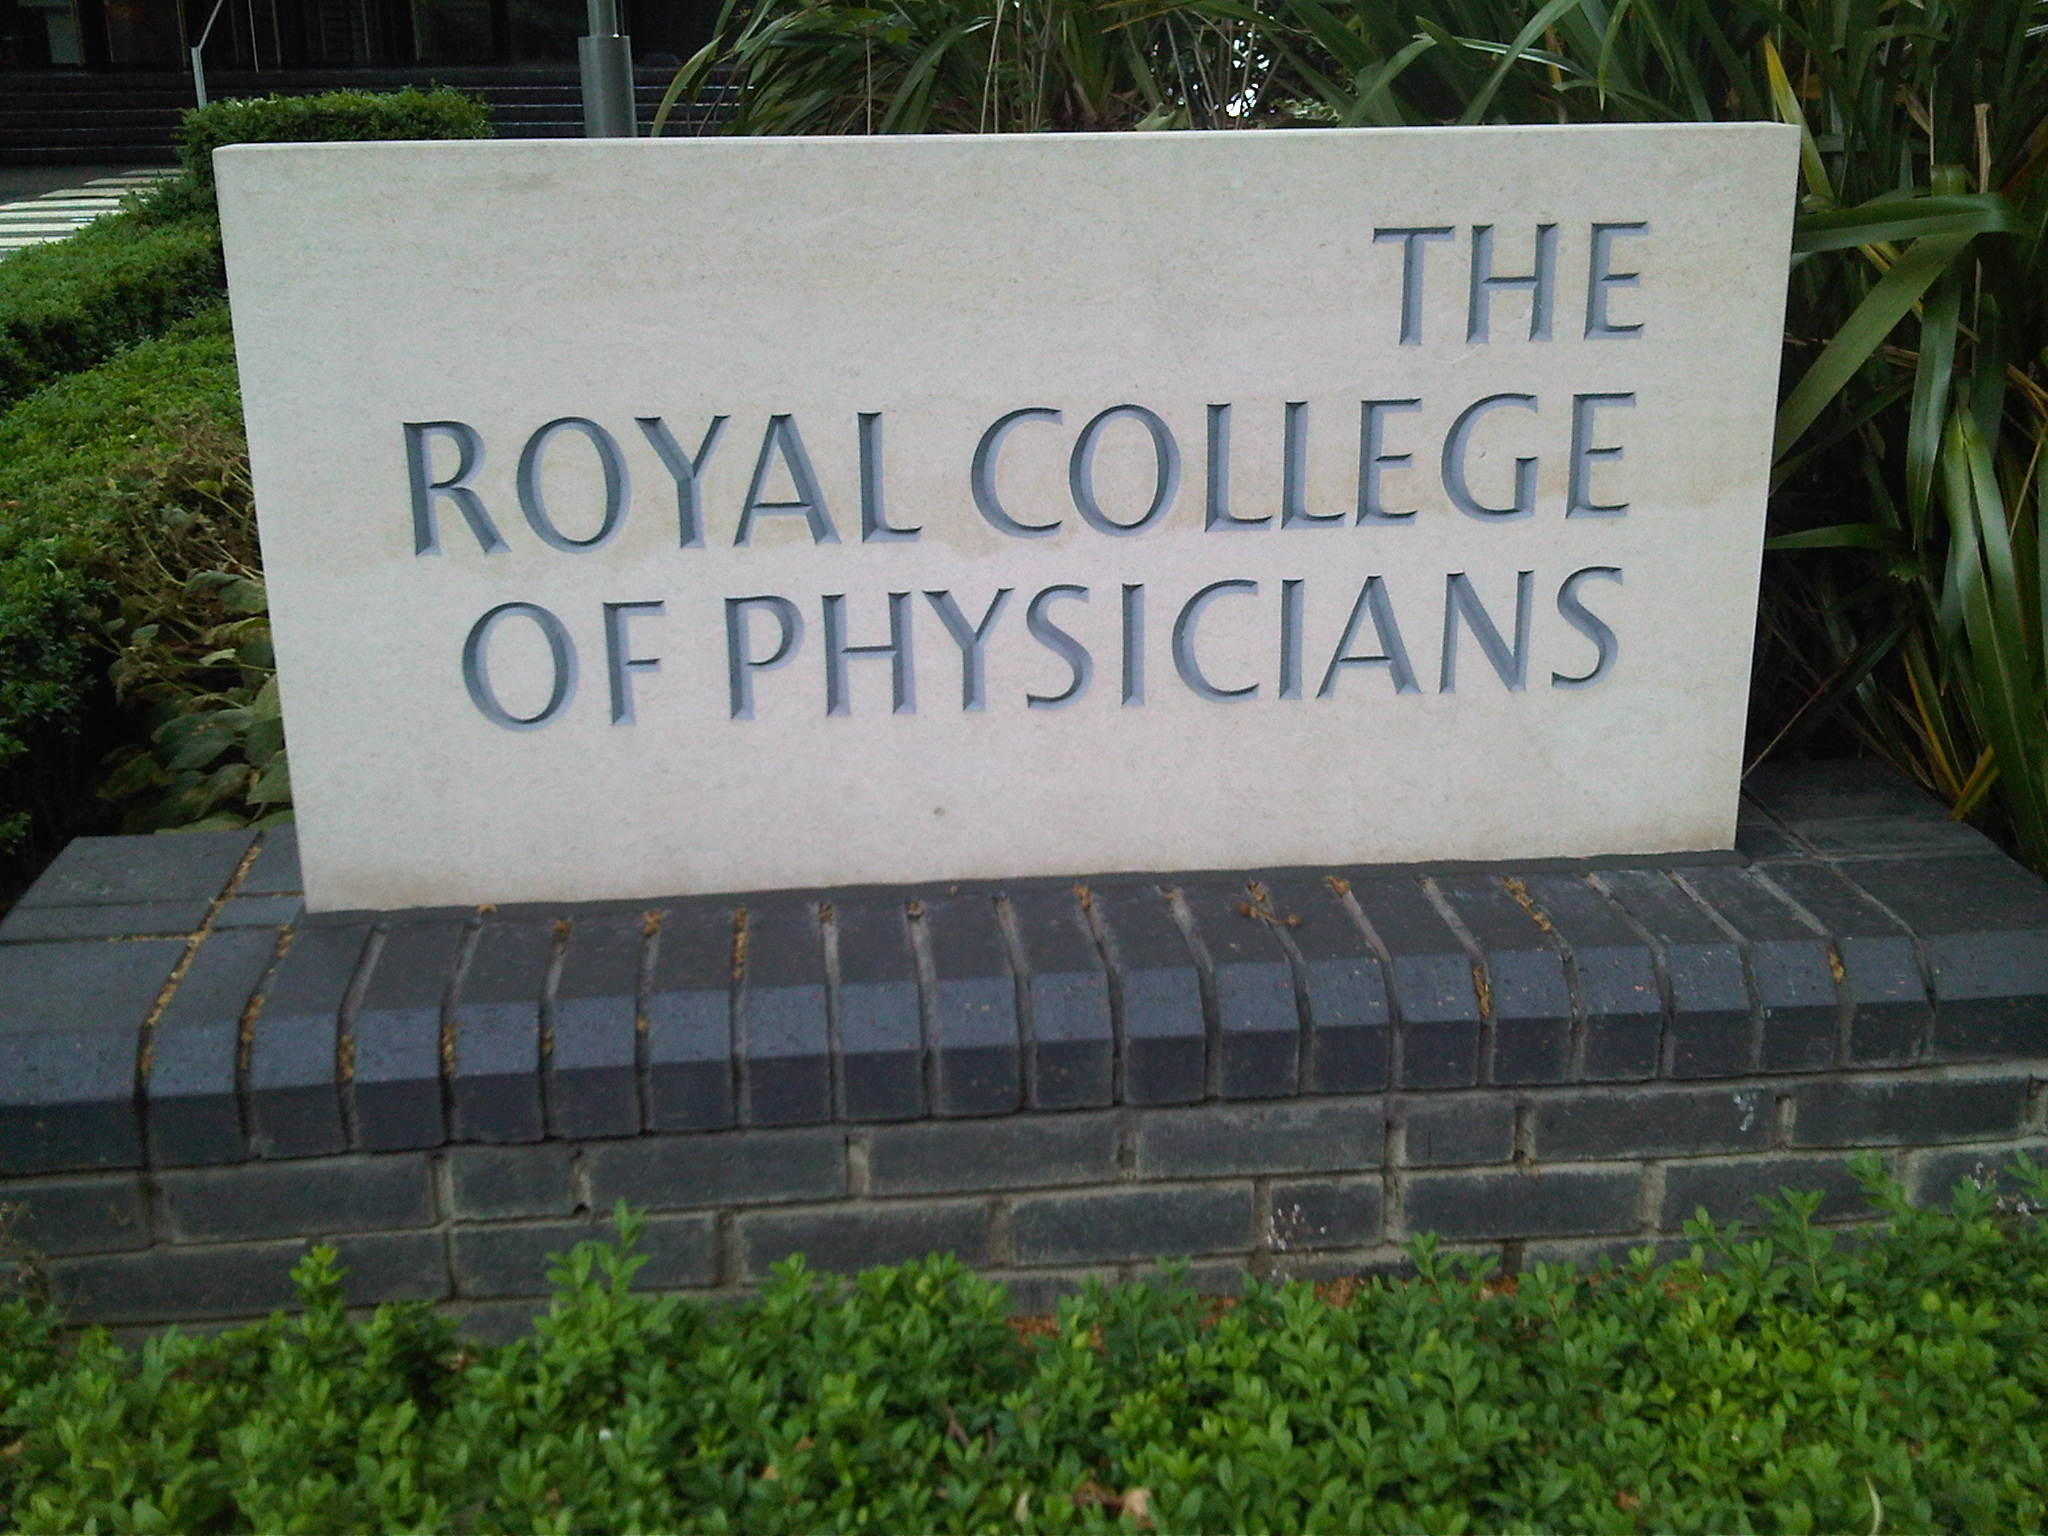 Royal College of Physicians, Regents Park